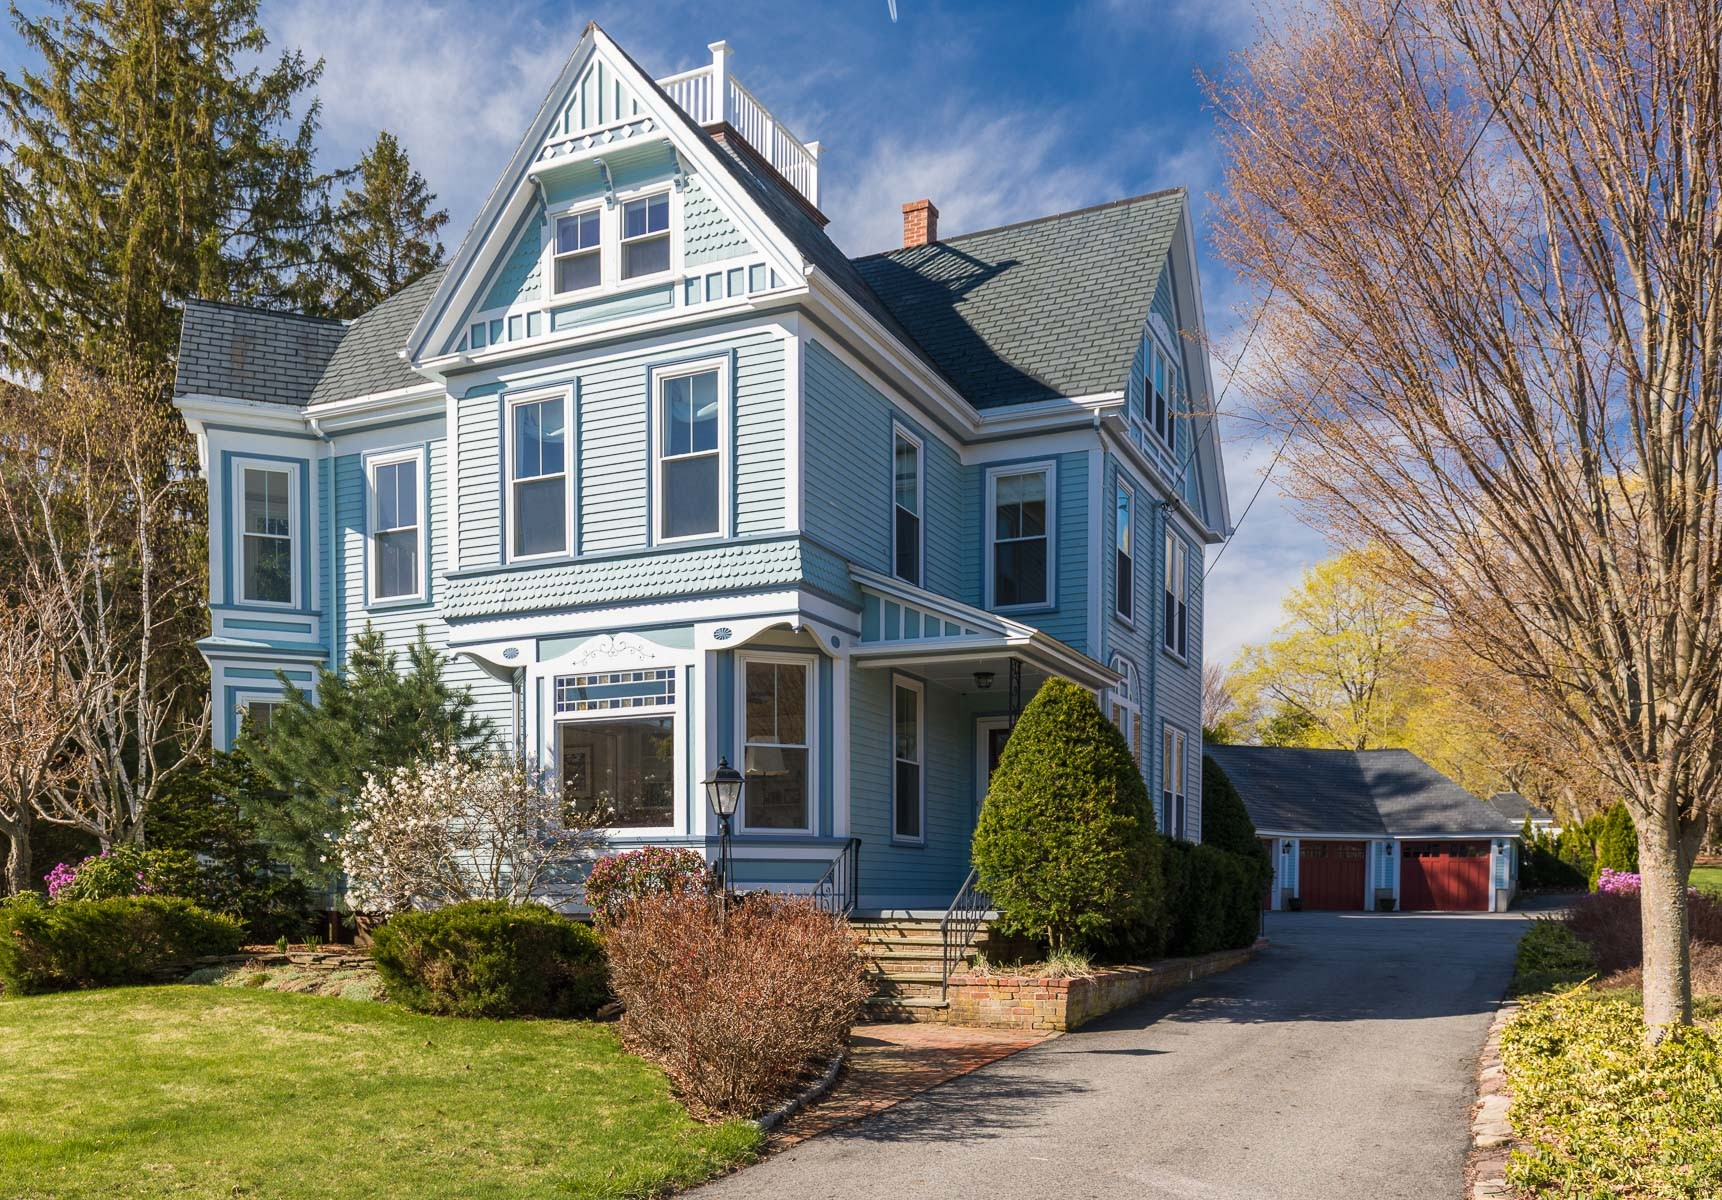 独户住宅 为 销售 在 Stunning Restored Victorian 293 High Street Newburyport, 马萨诸塞州 01950 美国